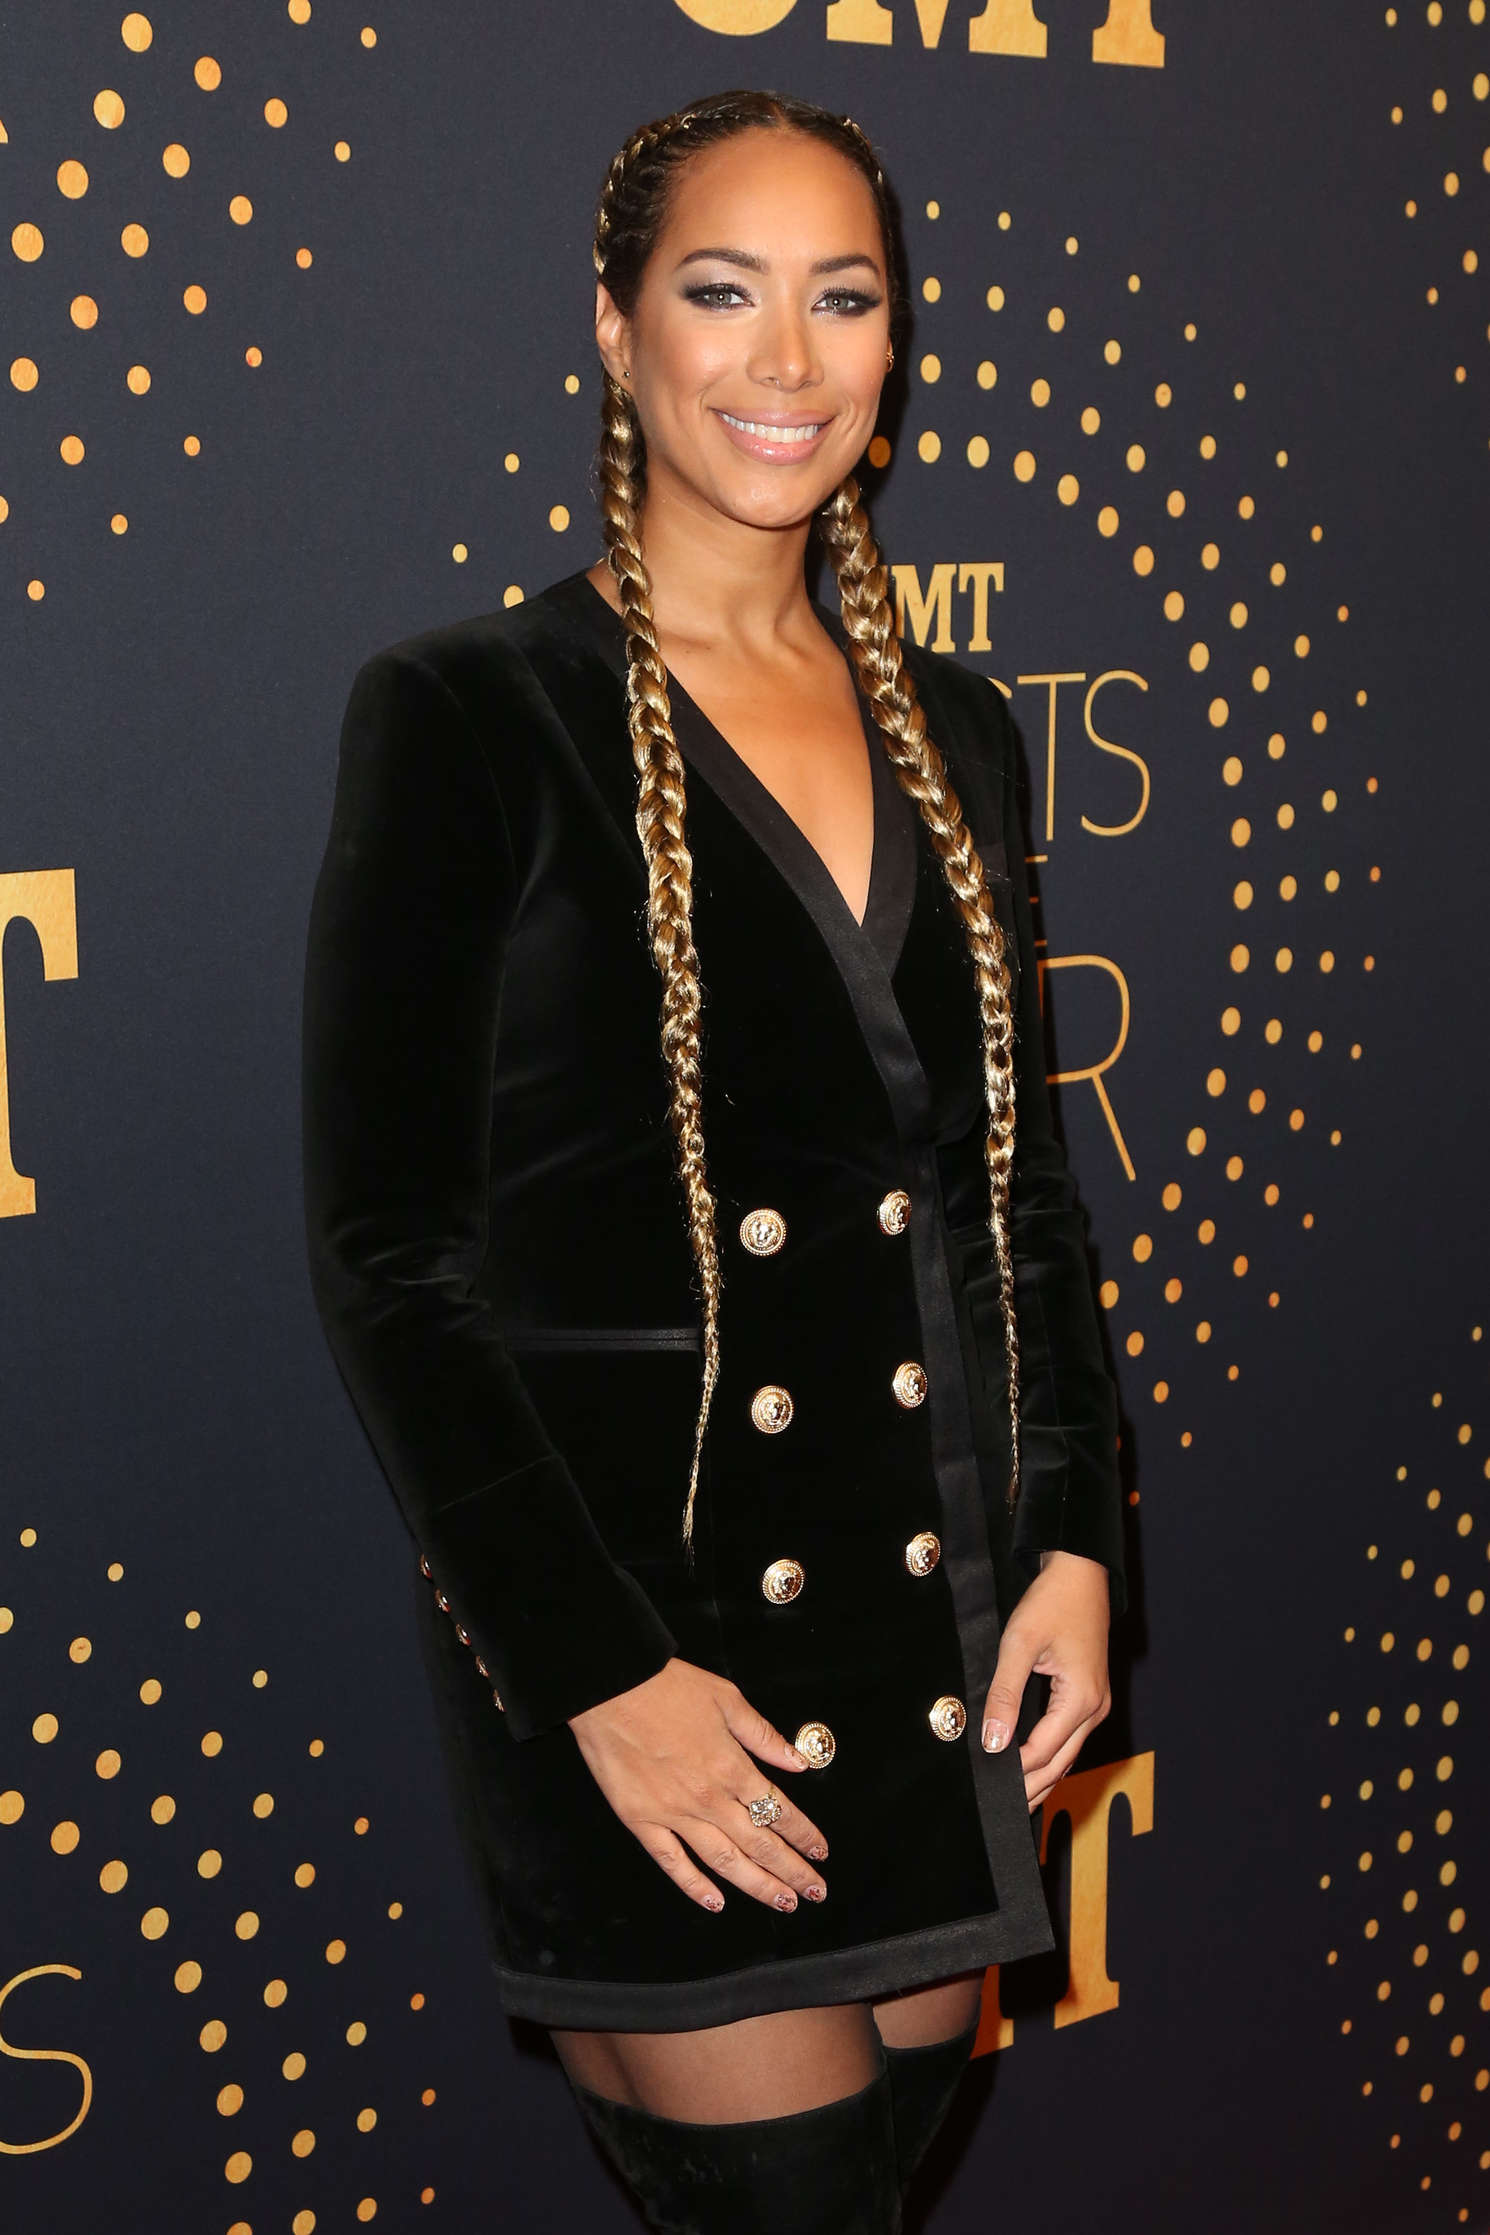 Leona Lewis CMT Artists of the Year in Nashville